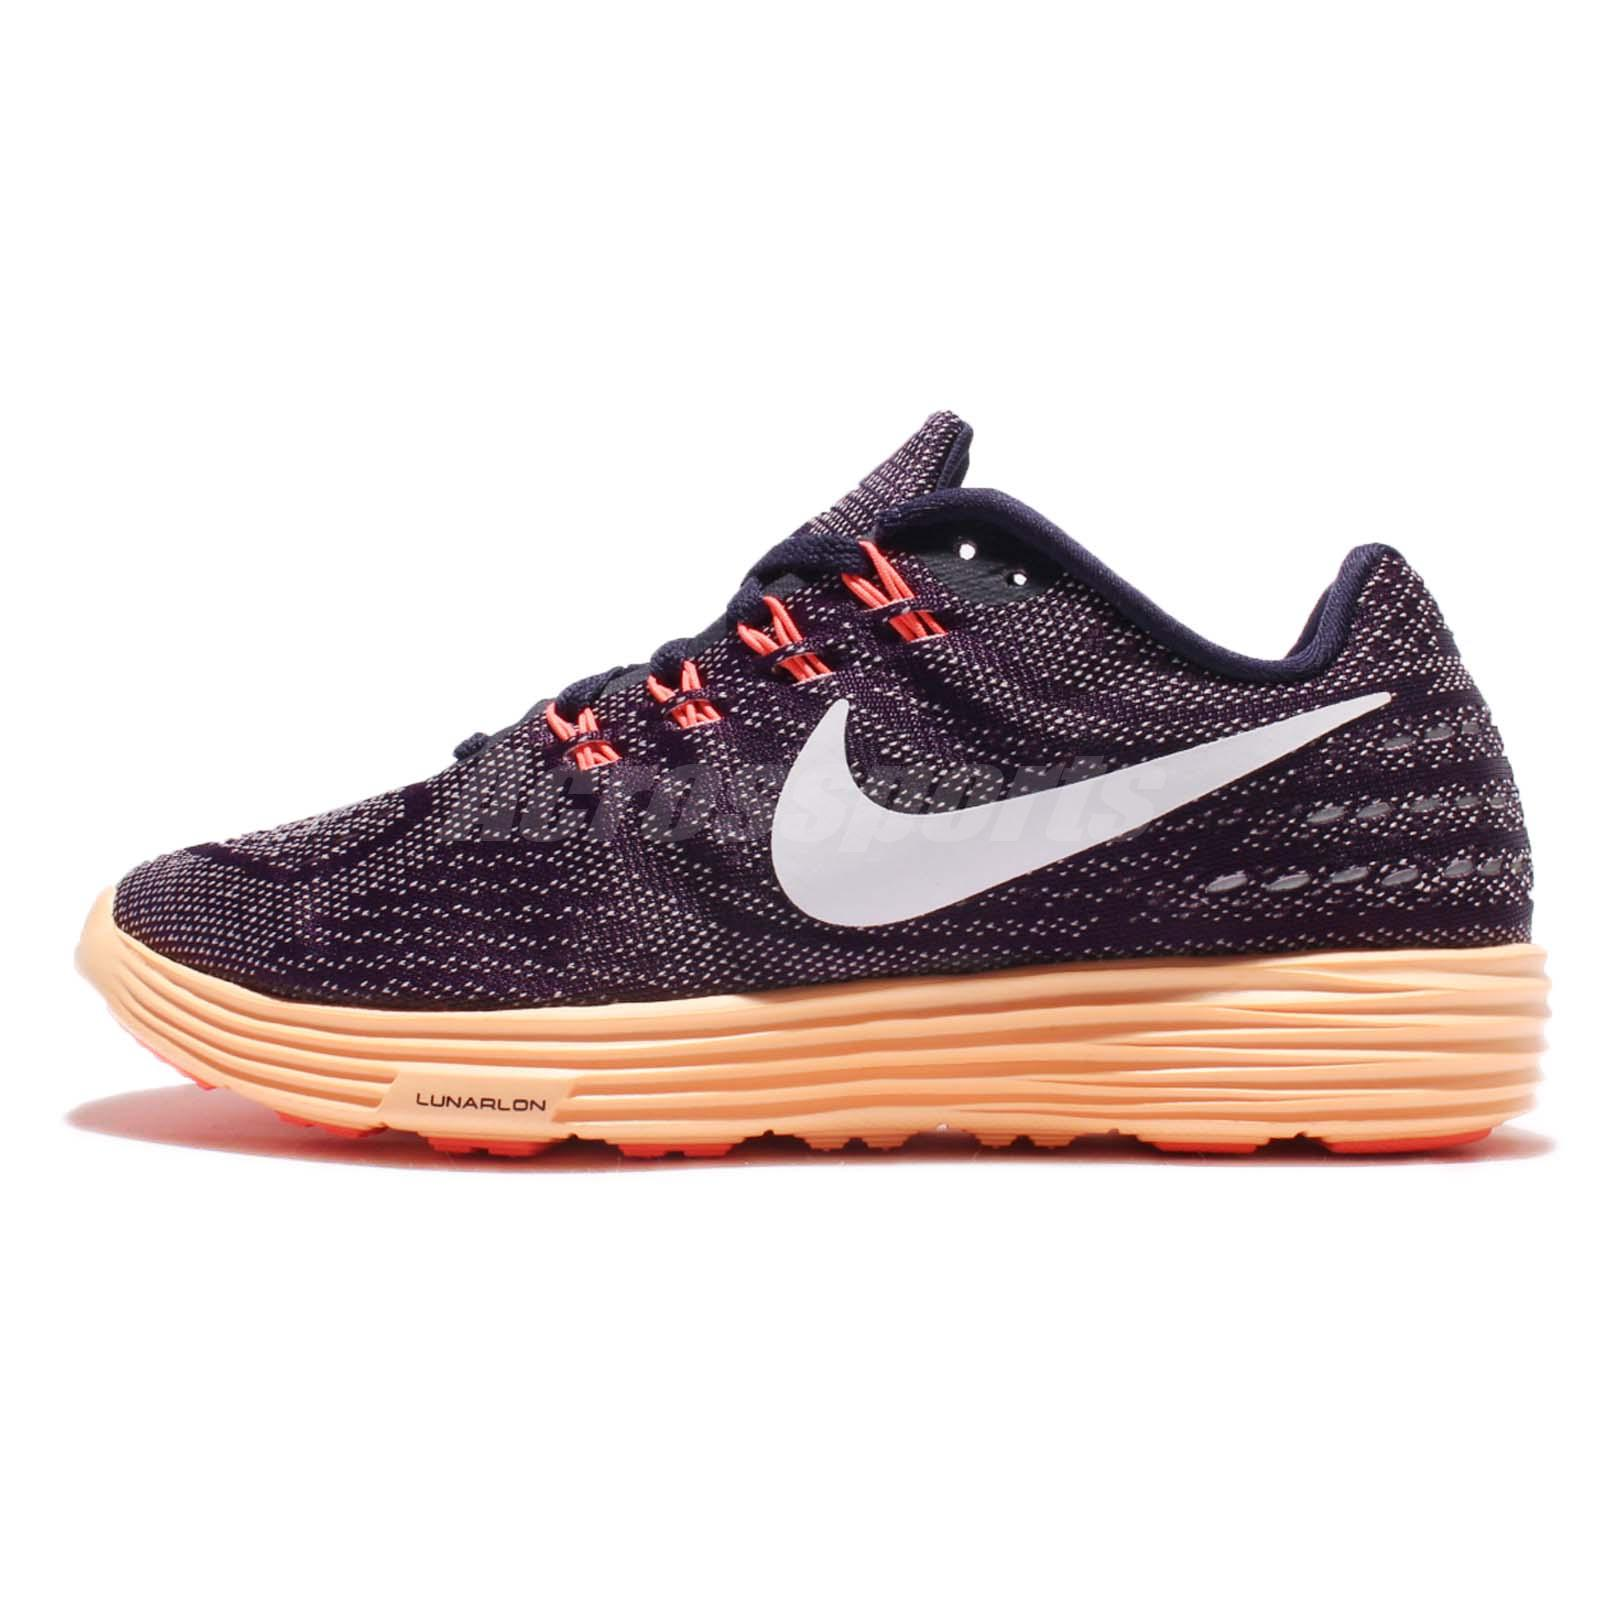 Wmns Nike Lunartempo 2 Two Purple Orange Women Running Shoes Sneakers  818098-502